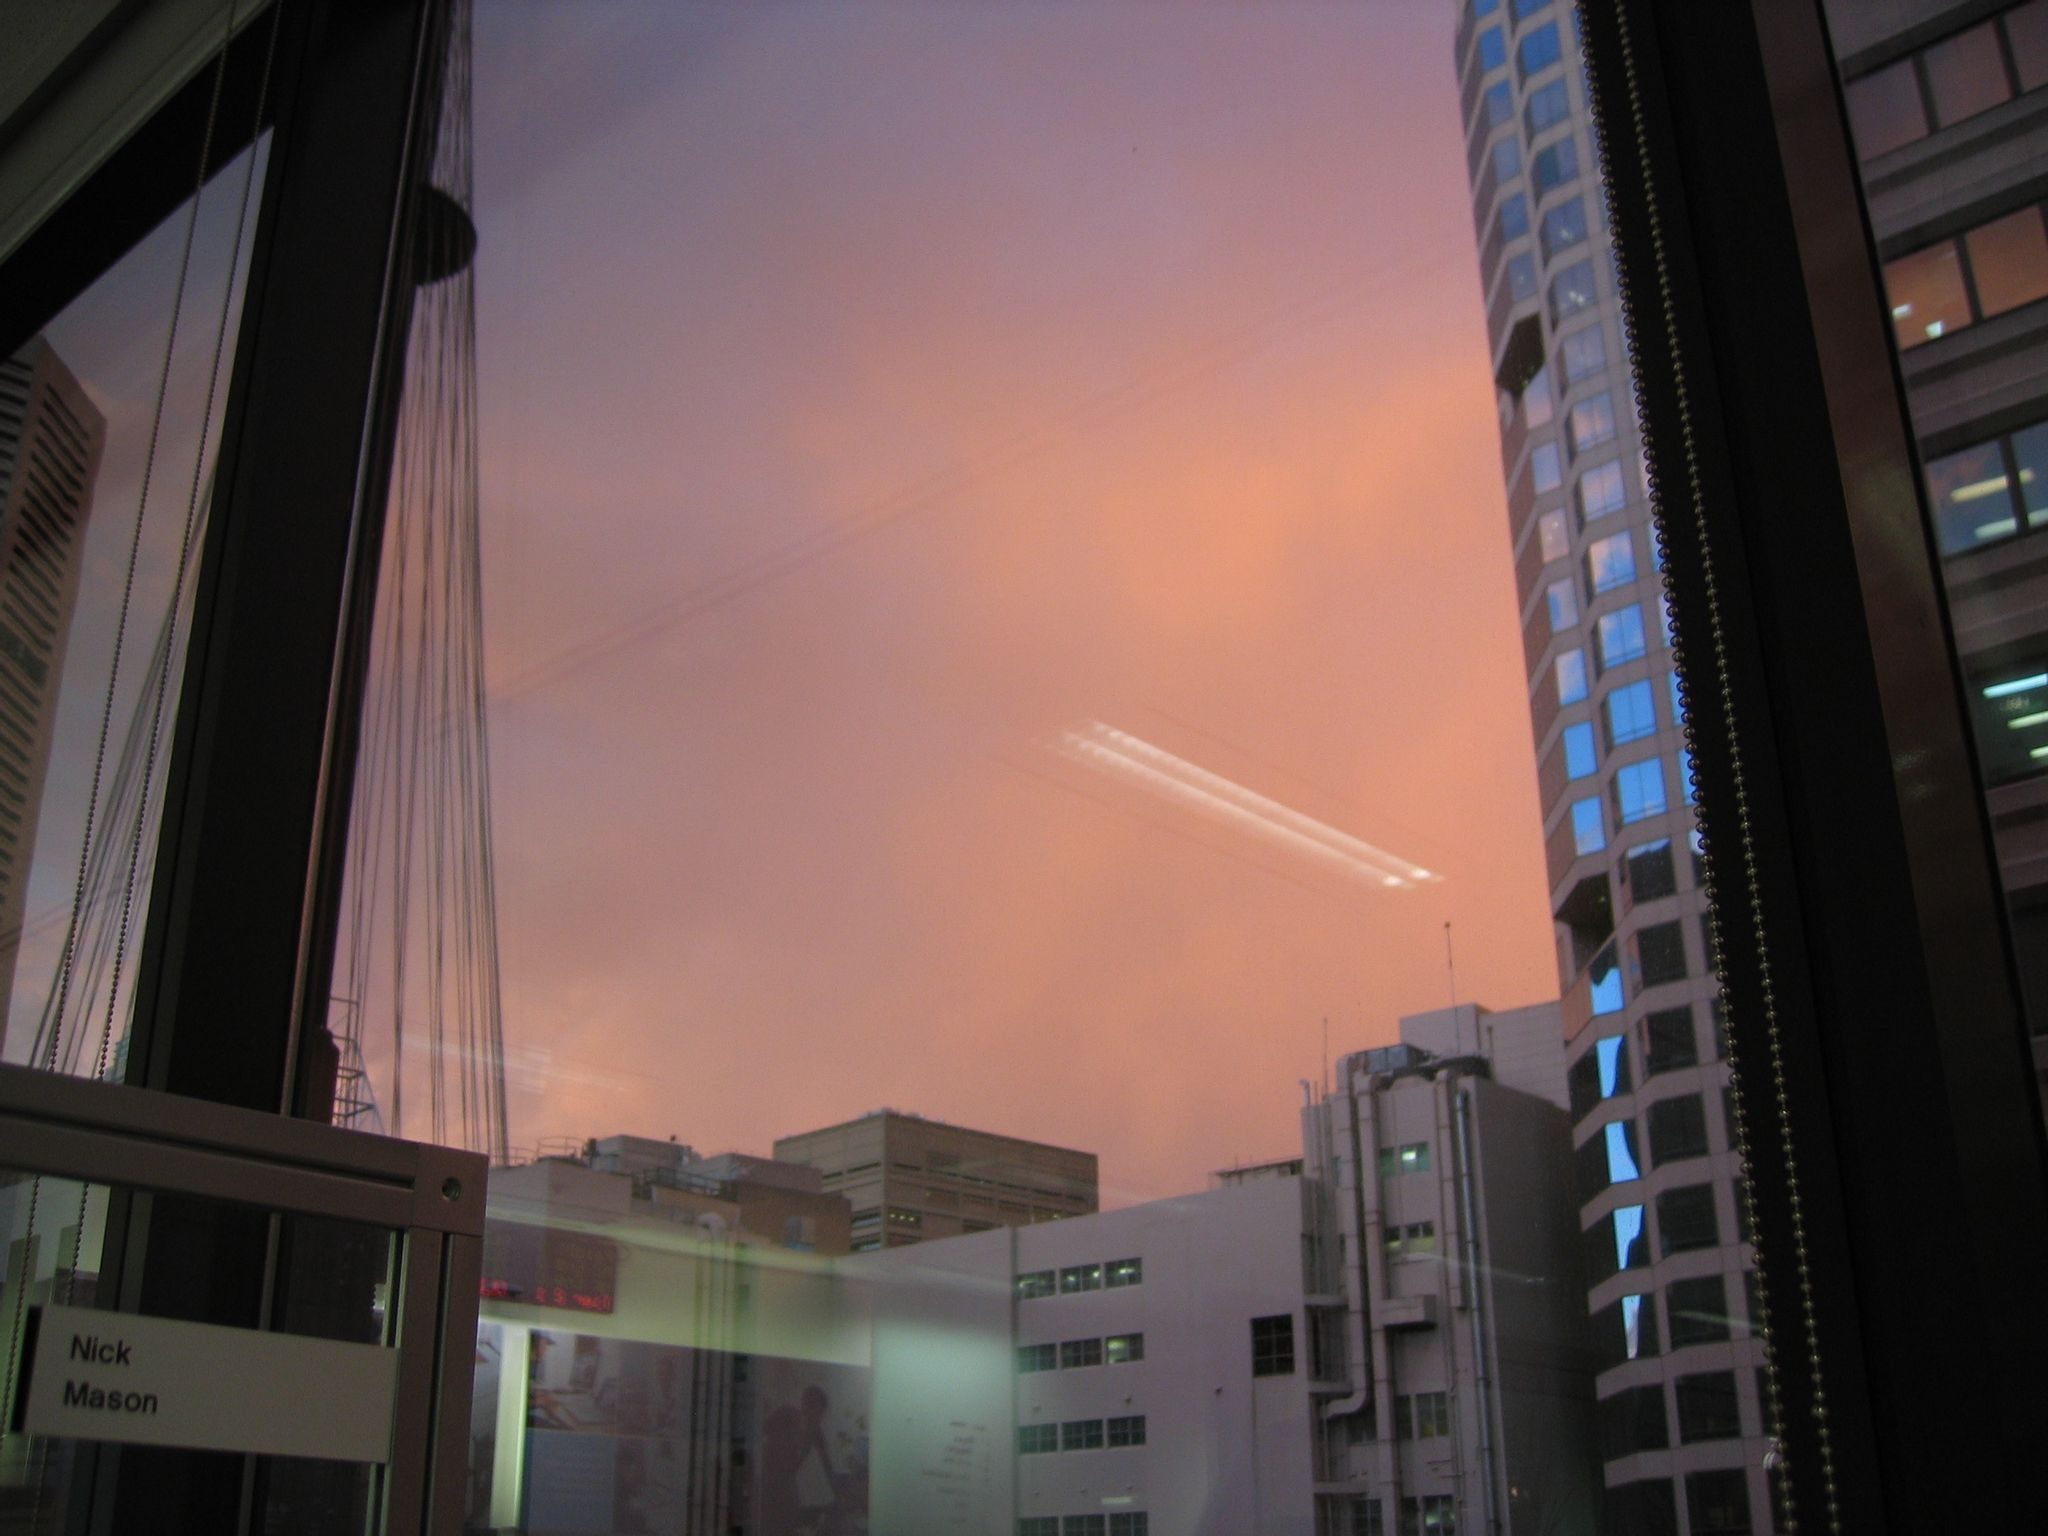 Another photo looking out the window of my work desk with duller orange clouds now fading into purple, in between a tall building on the right and Centrepoint Tower on the left.